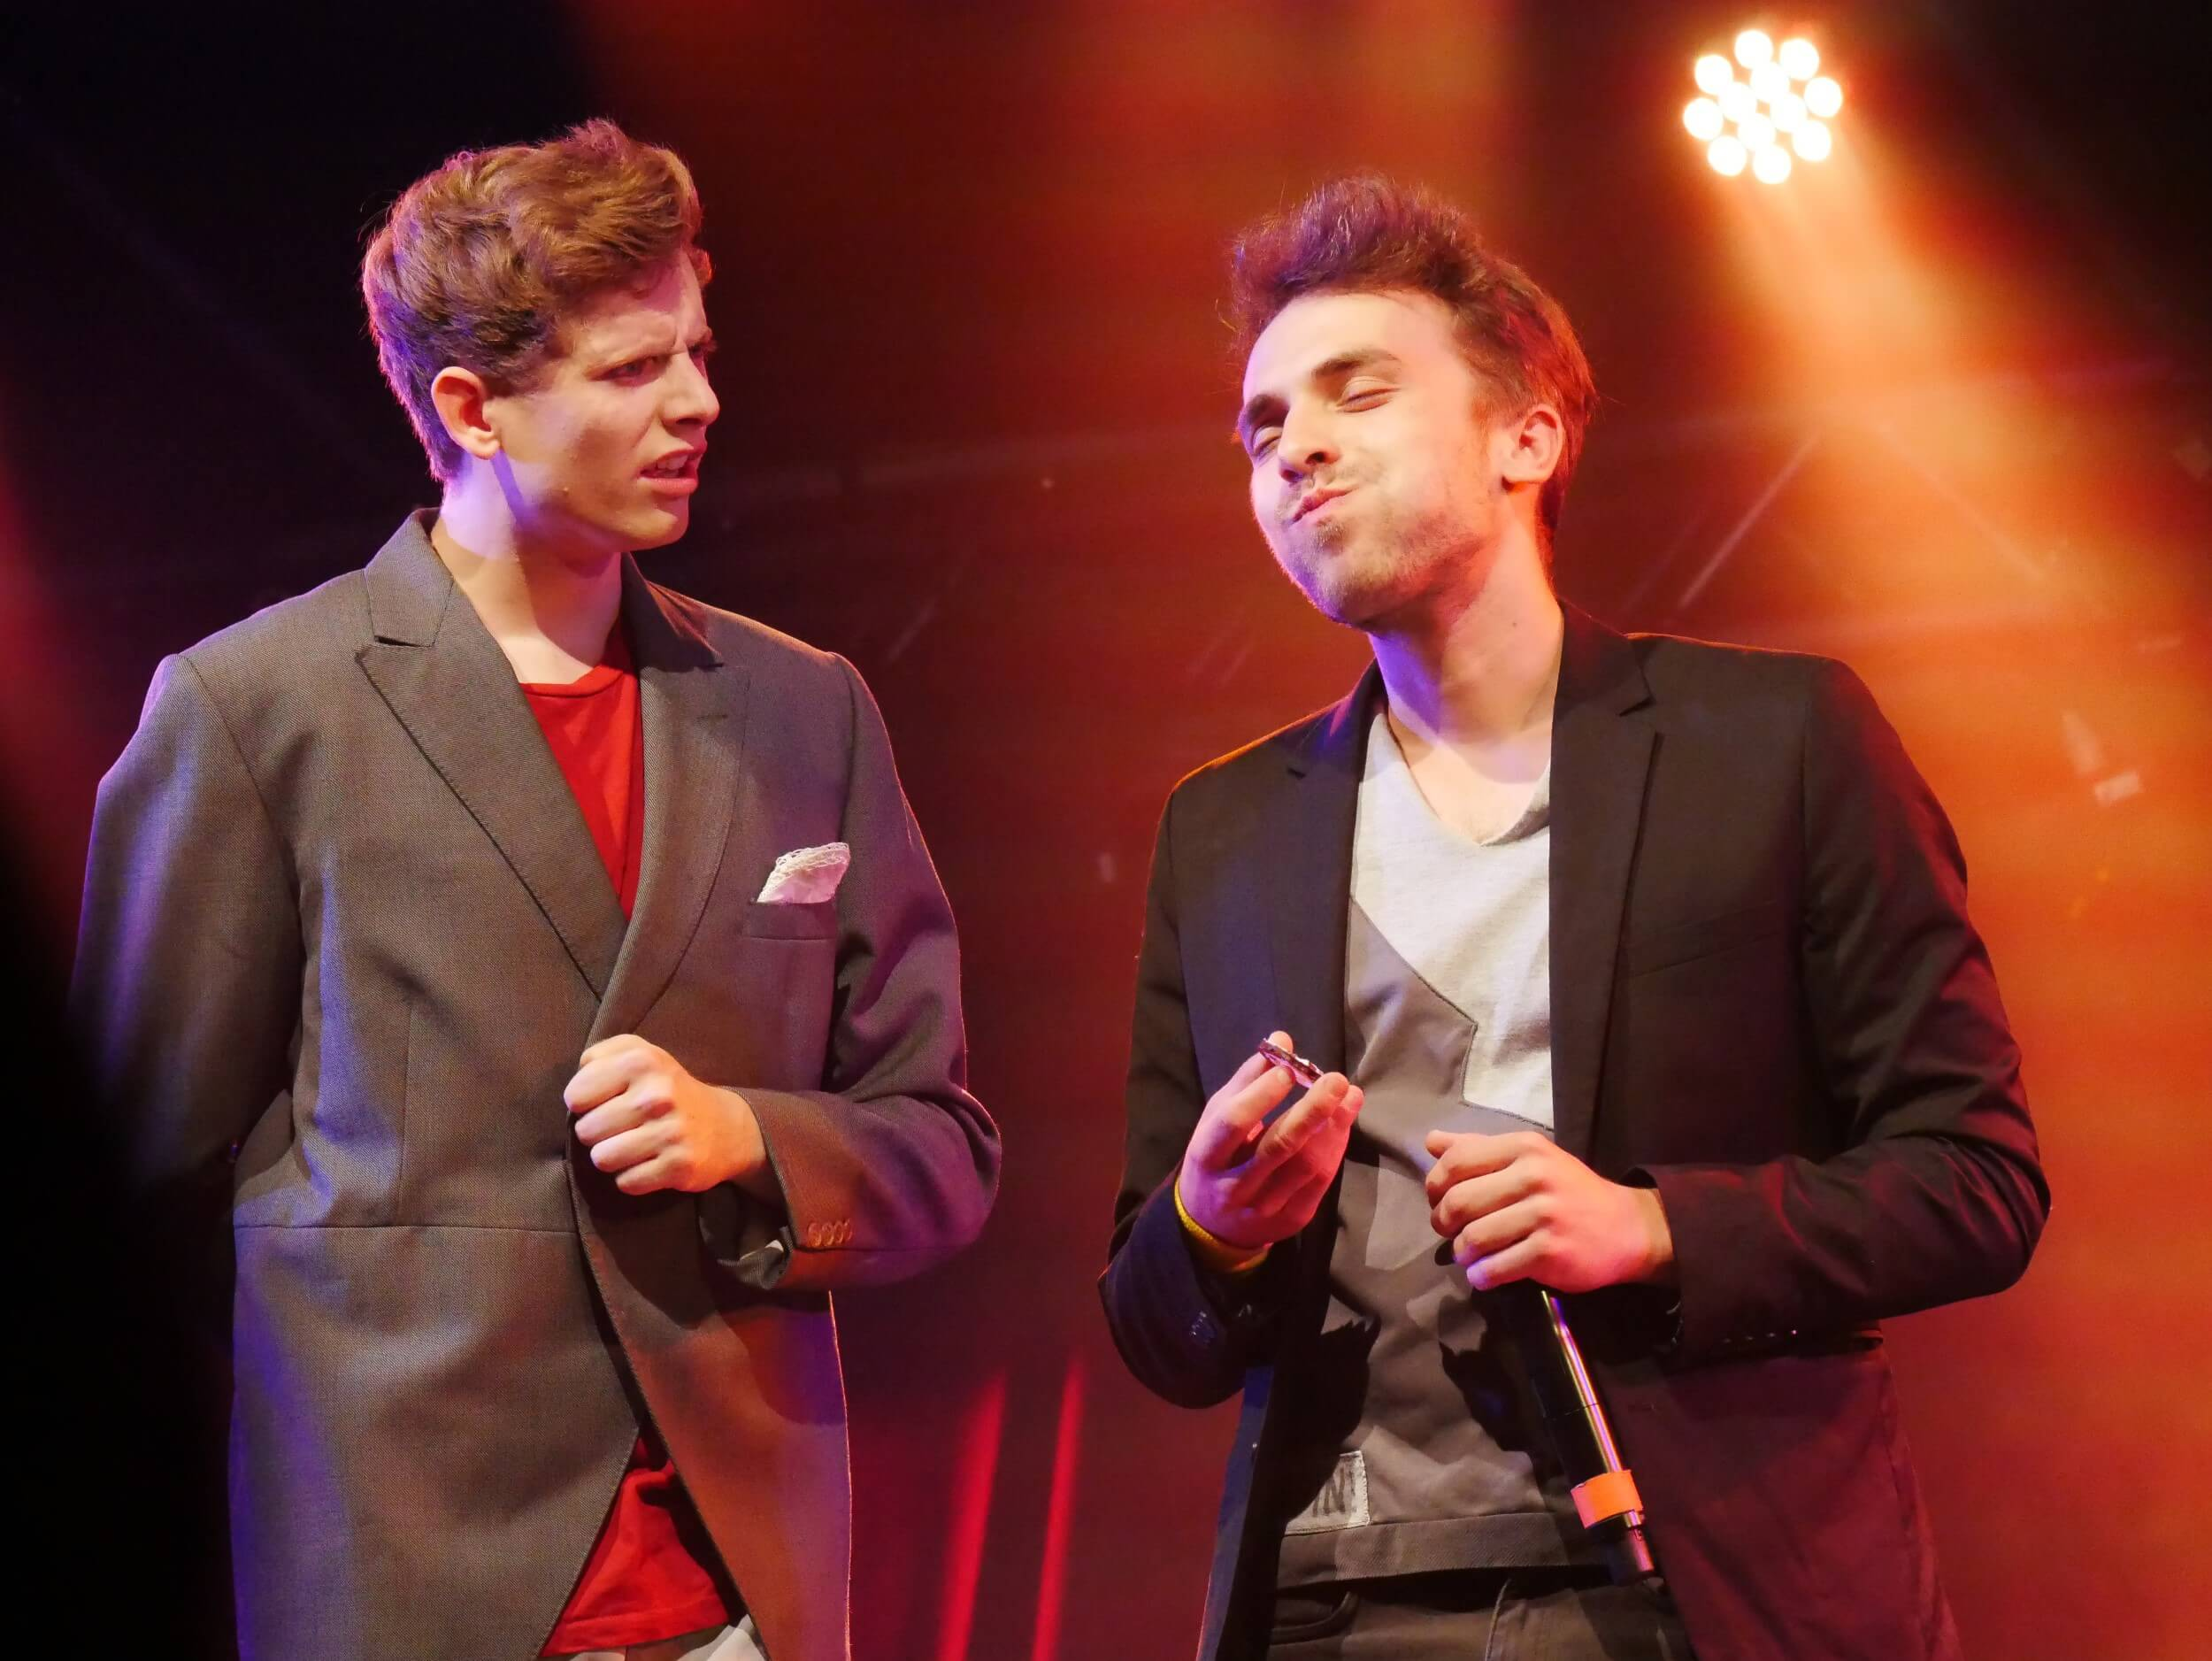 Beatbox hannover